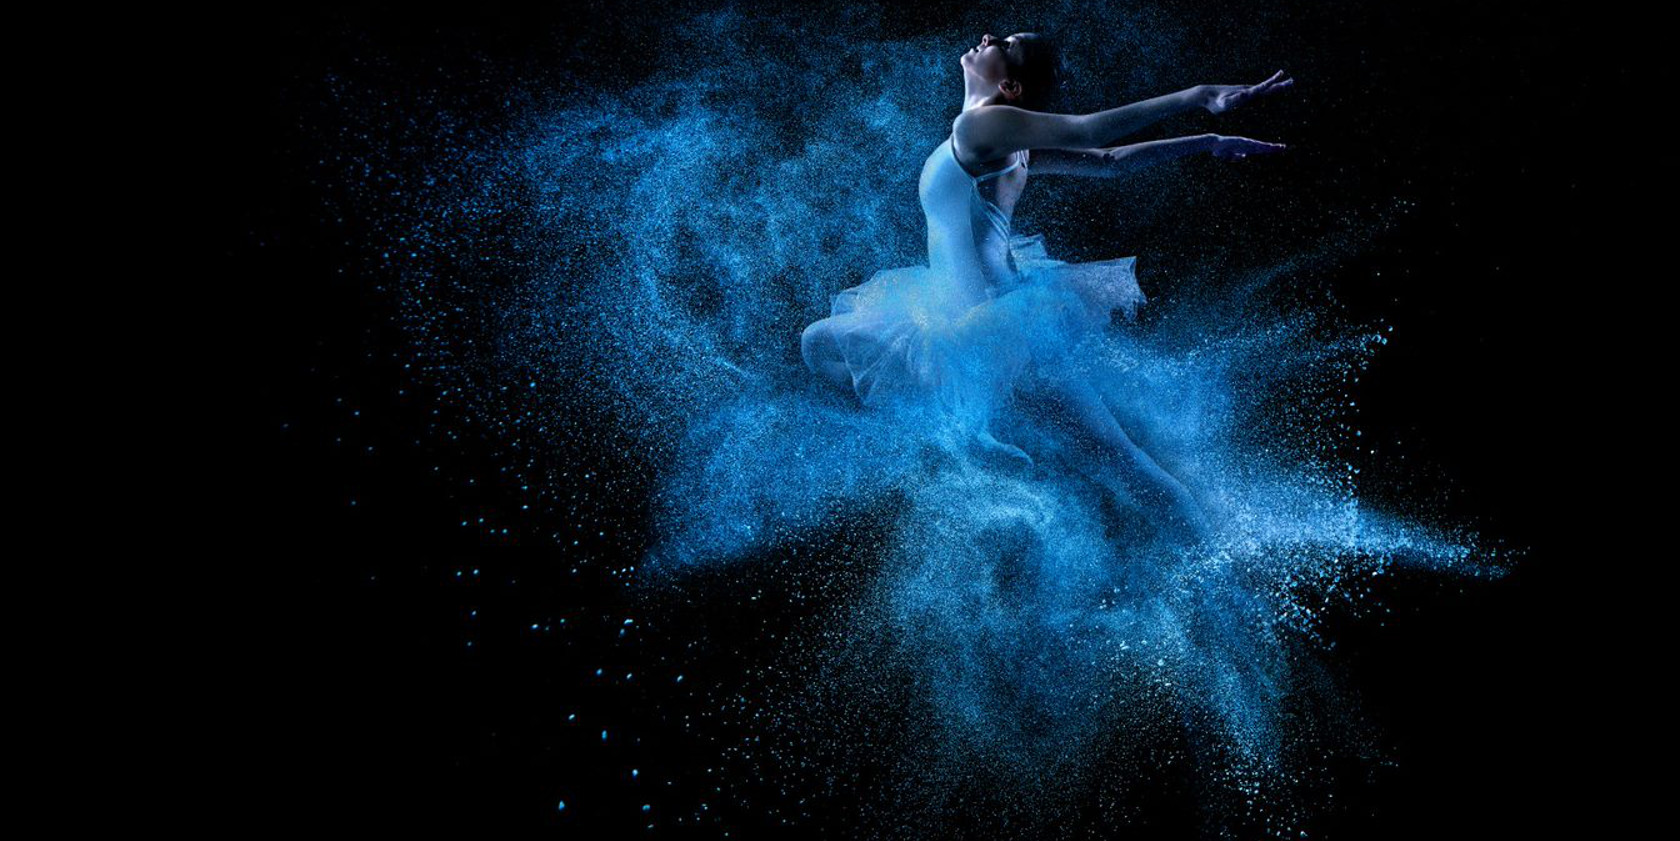 Ballet dancer colour image contrast. Vibrant neon blue colour contrast of ballet clothing onto a black background